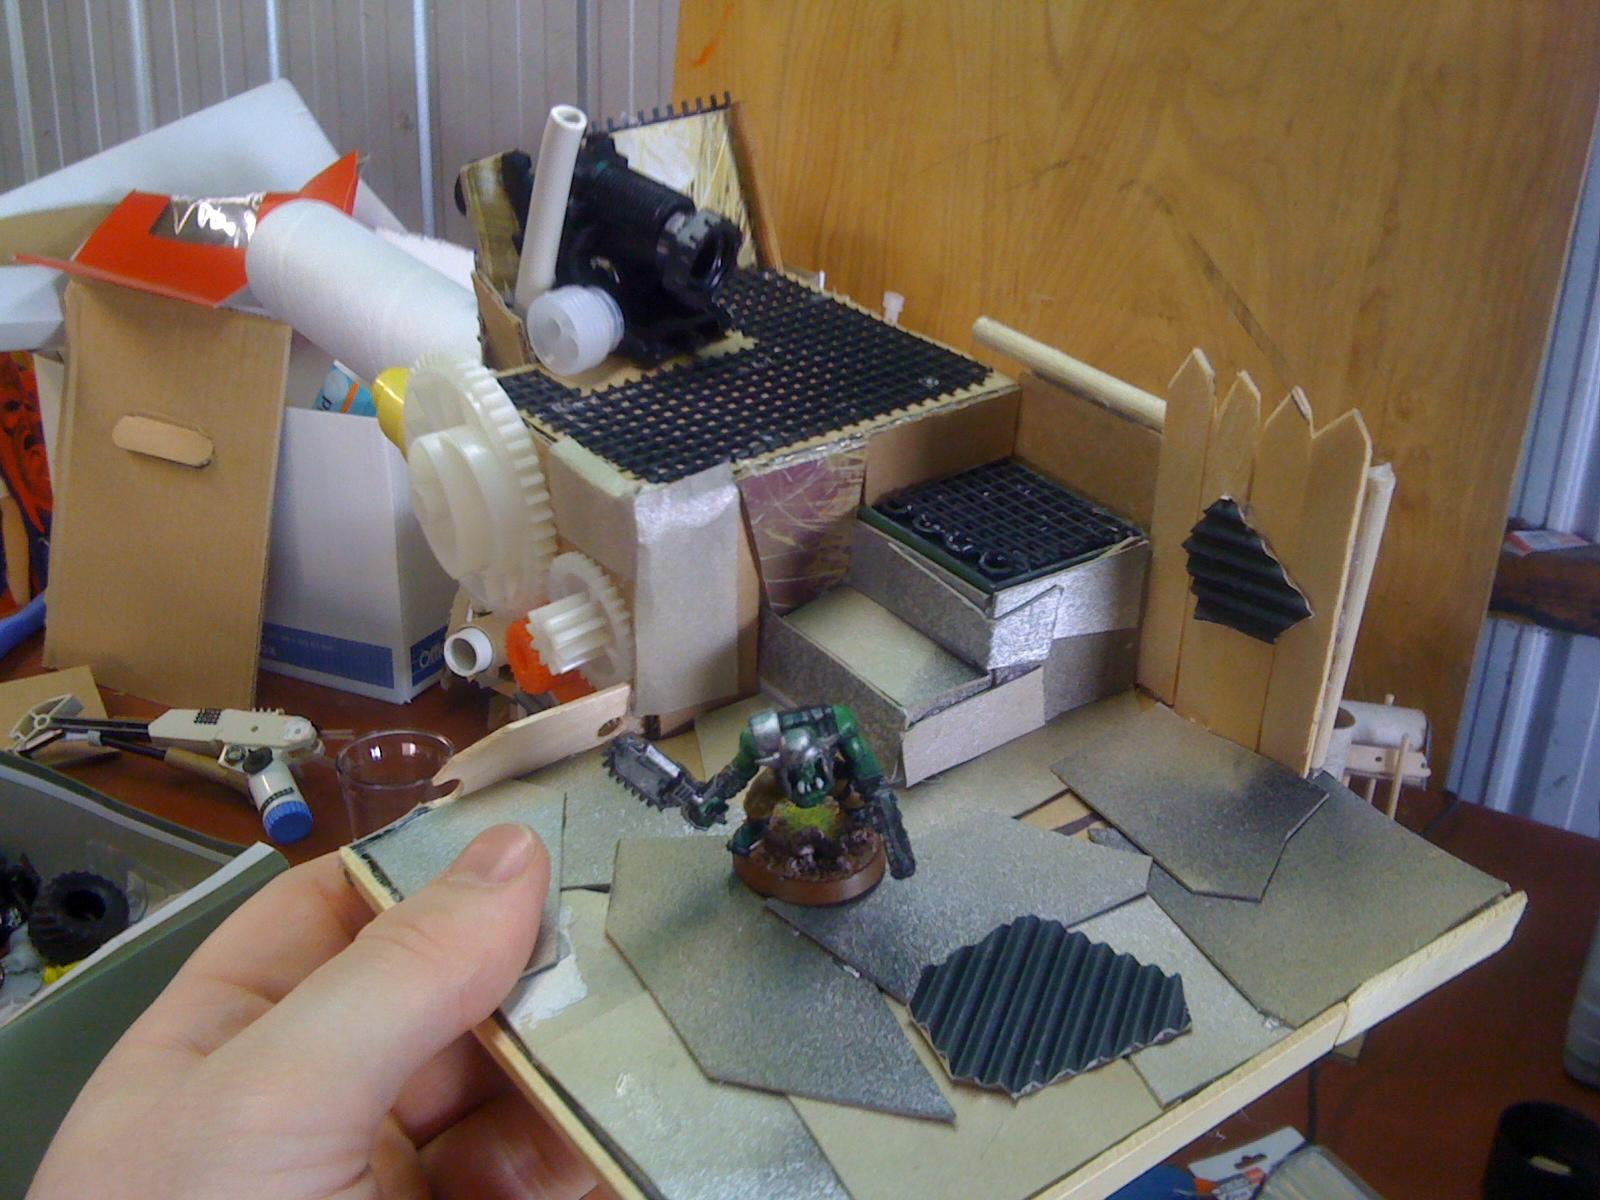 Ork Wip, More complete version of the gun arm platform starting to take shape